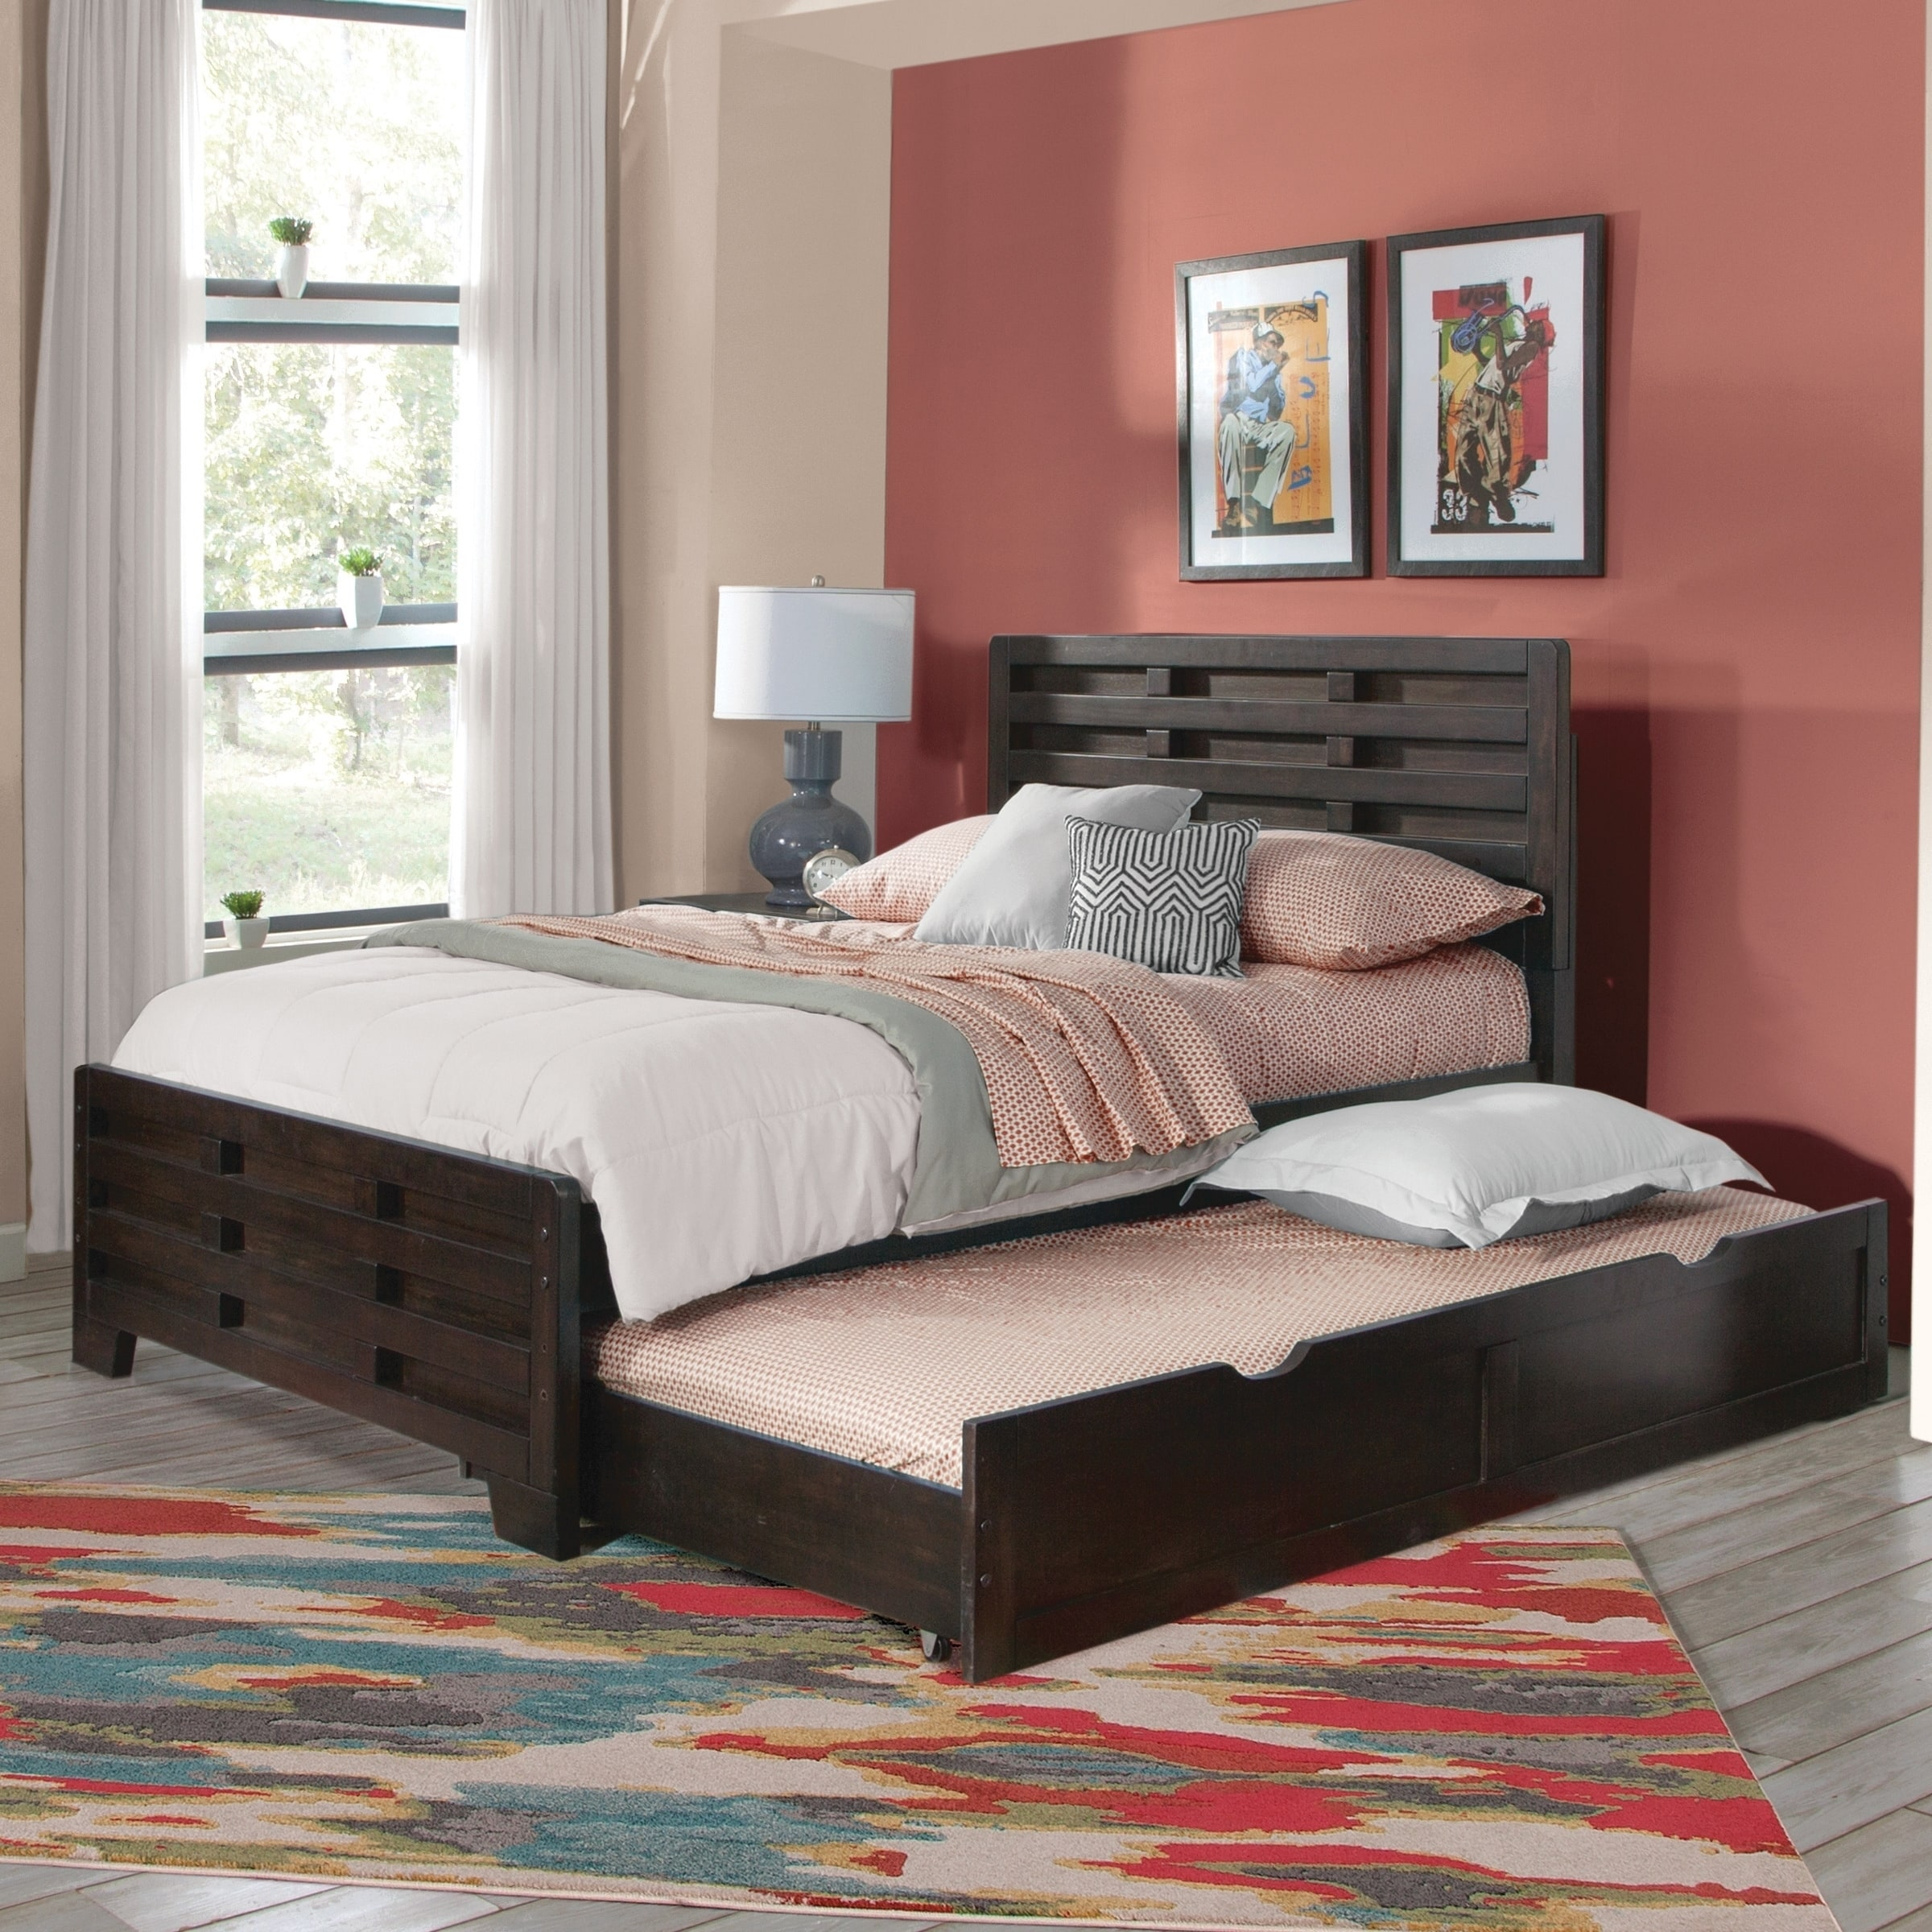 Best Brockton Captains Bed With Trundle By Greyson Living Twin 400 x 300